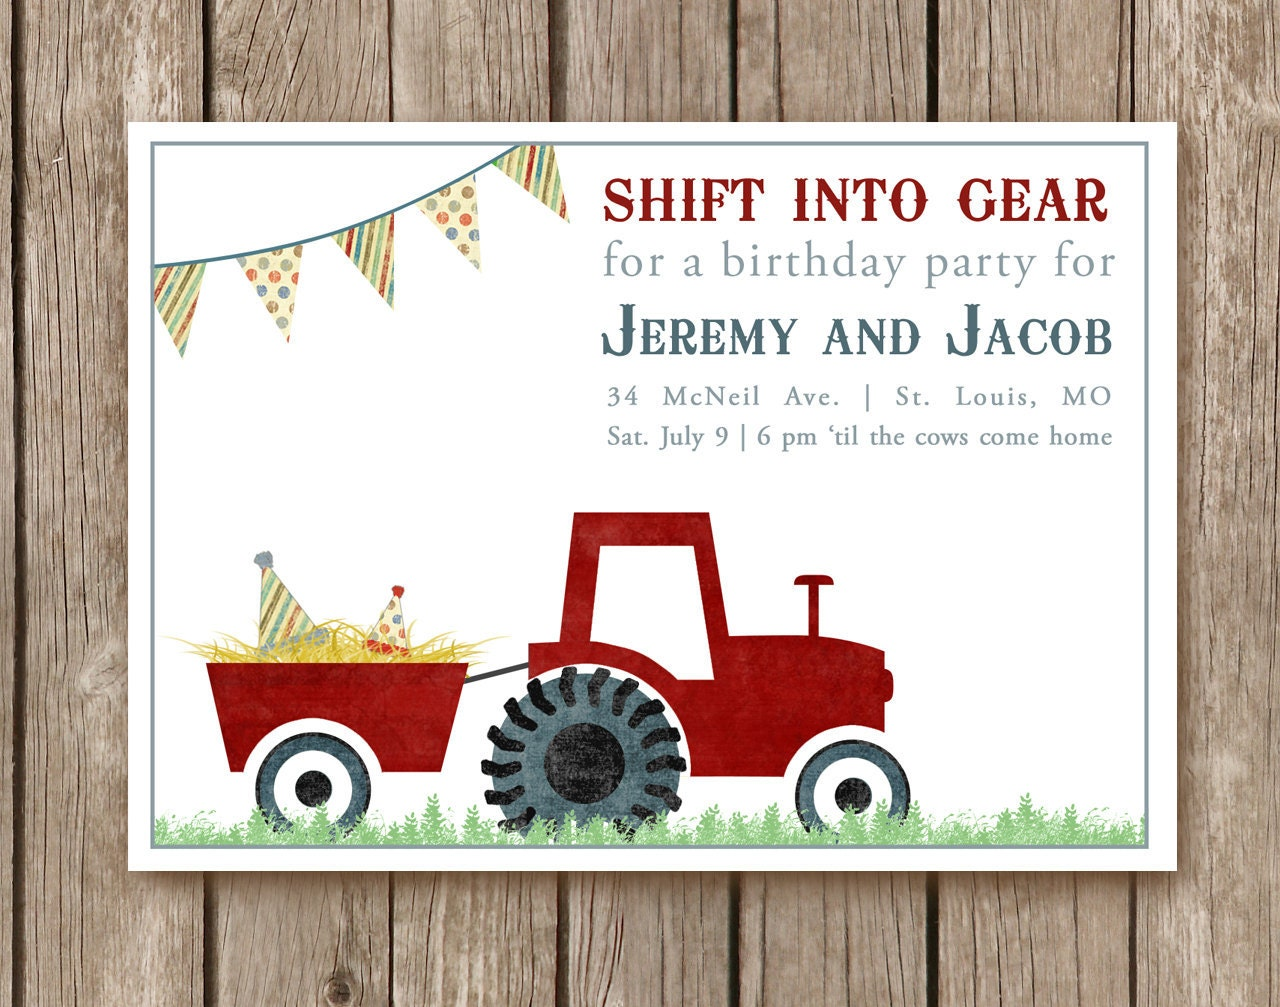 Tractor Birthday Party Invitation - perfect for any type of party on the farm and for farmers of all ages (DEPOSIT)